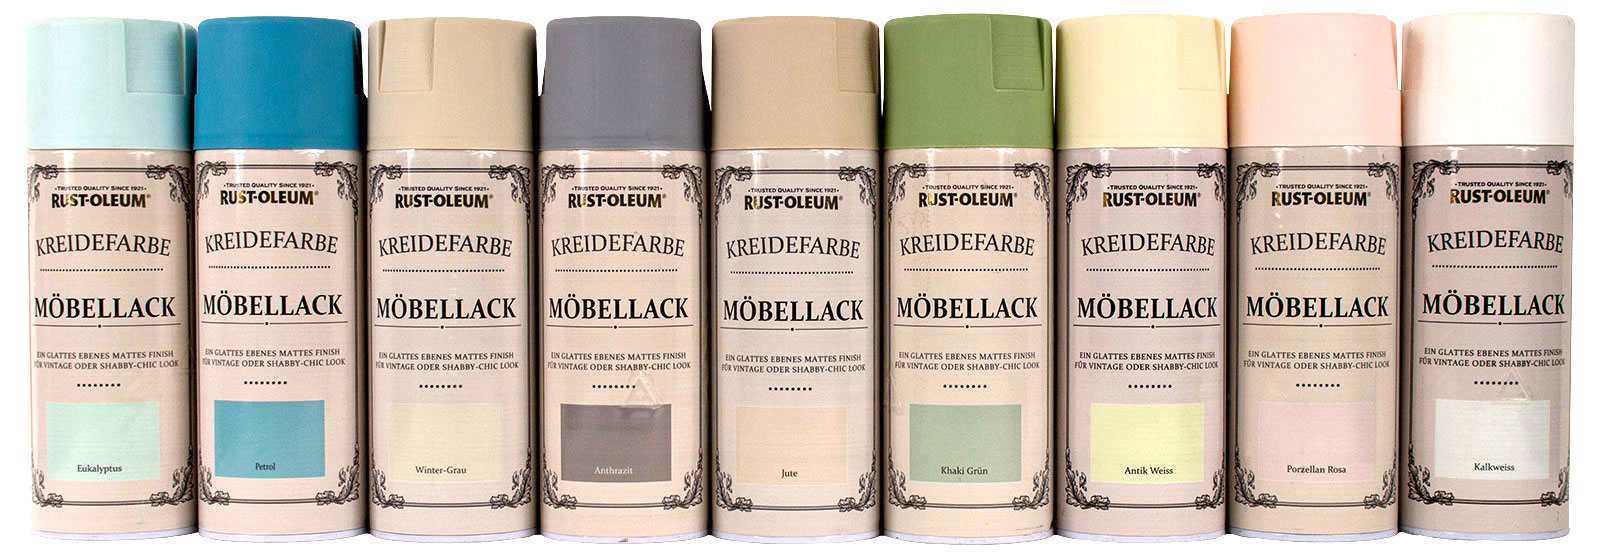 rust oleum kreidefarbe 400ml spraydose m bellack shabby. Black Bedroom Furniture Sets. Home Design Ideas